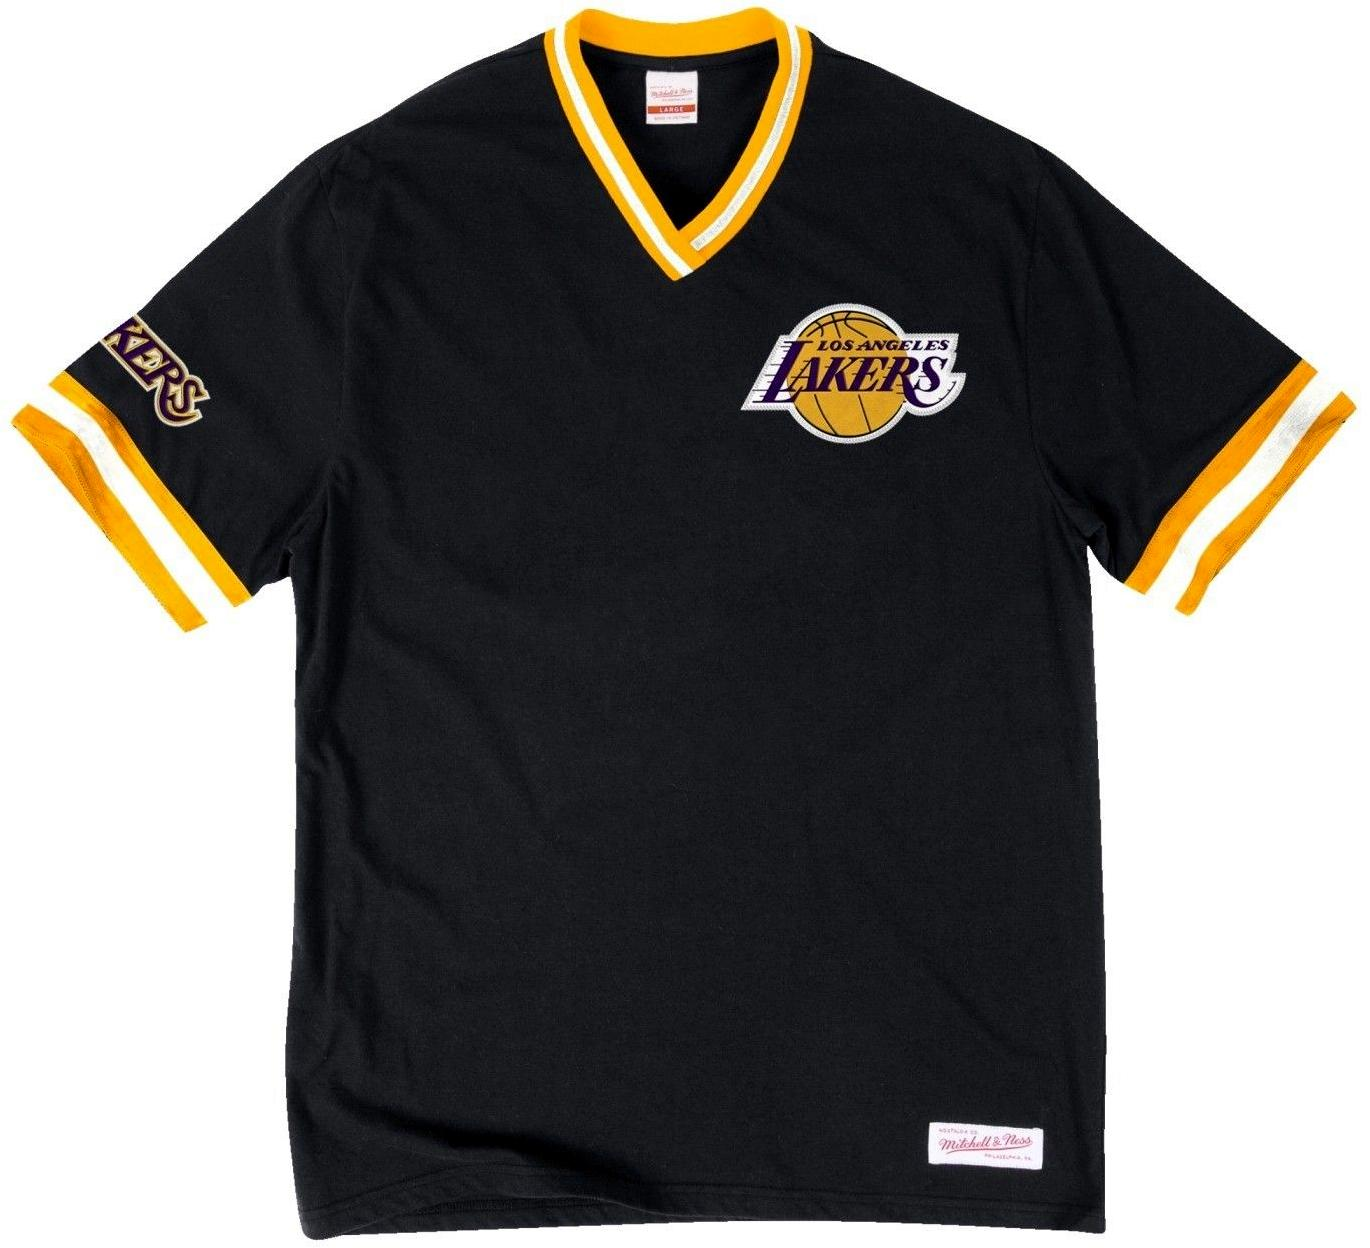 Lakers Retro V-Neck NBA Shirt